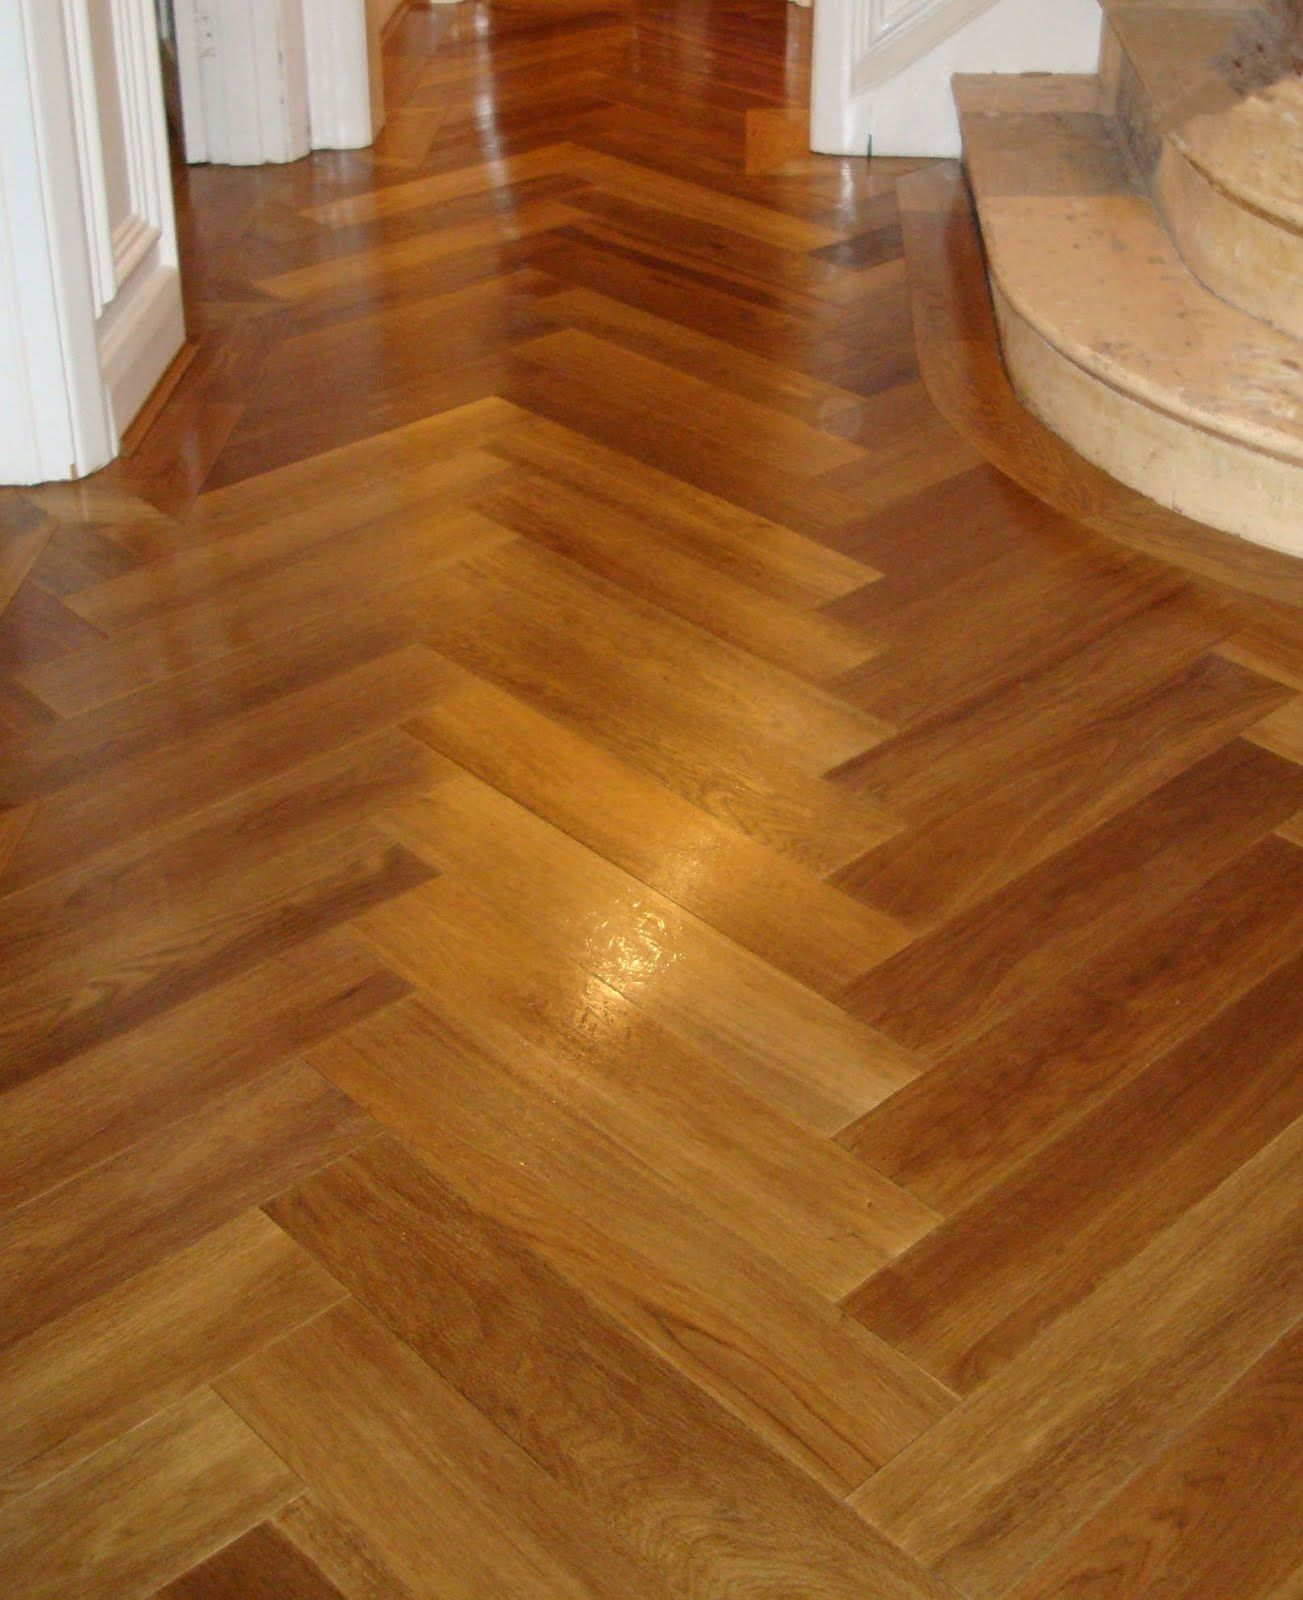 wood flooring ideas wood floor wood floor design wood